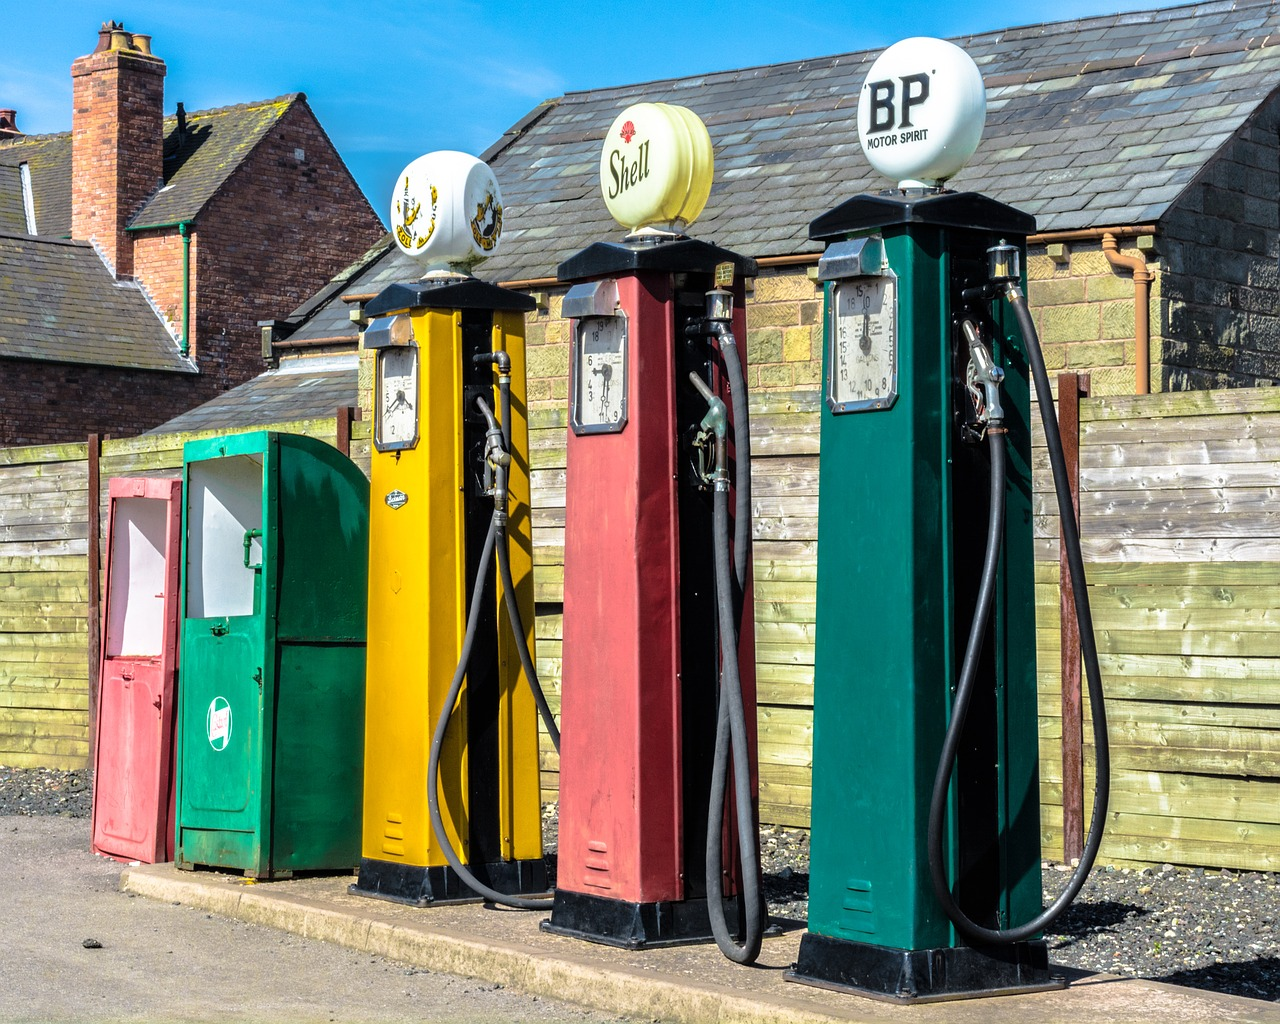 petrol pumps,petrol,retro,fuel,gasoline,transportation,petroleum,refill,refuel,free pictures, free photos, free images, royalty free, free illustrations, public domain